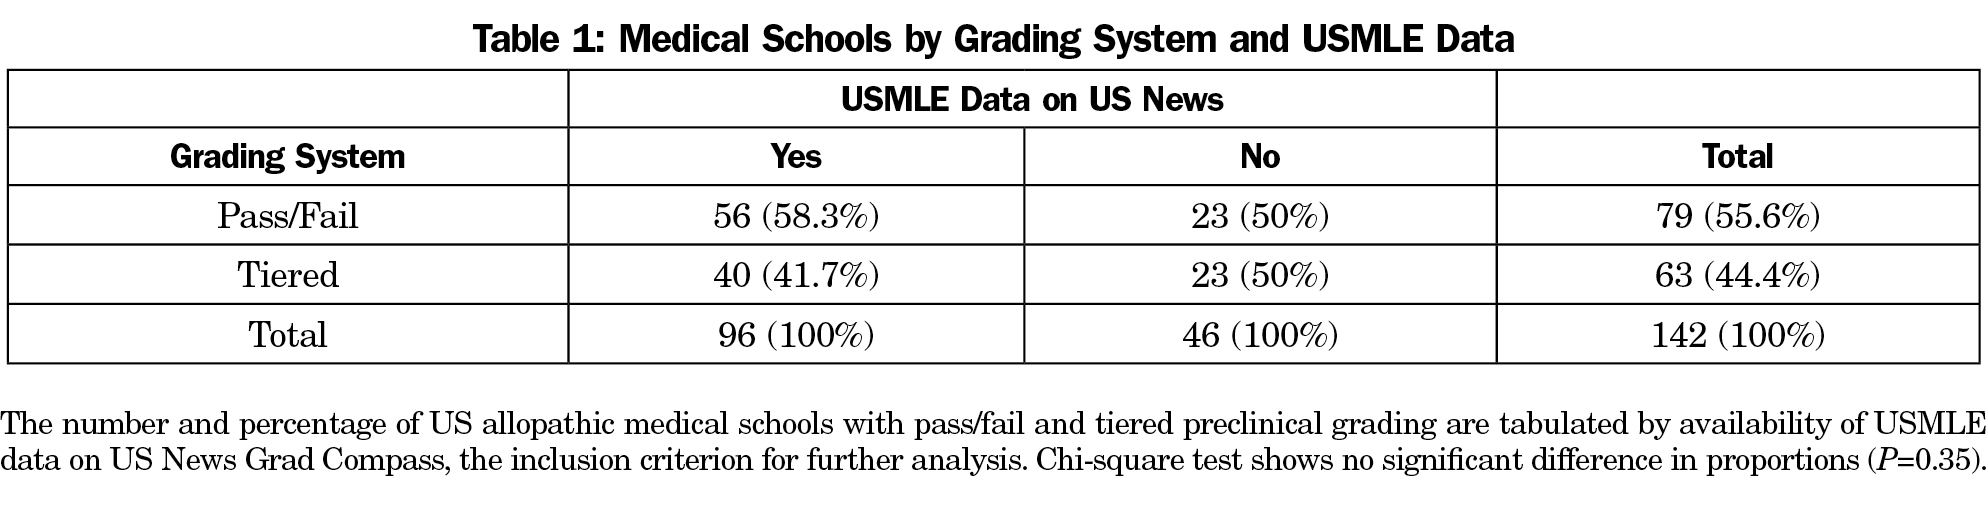 The Relationship Between Preclinical Grading and USMLE Scores in US